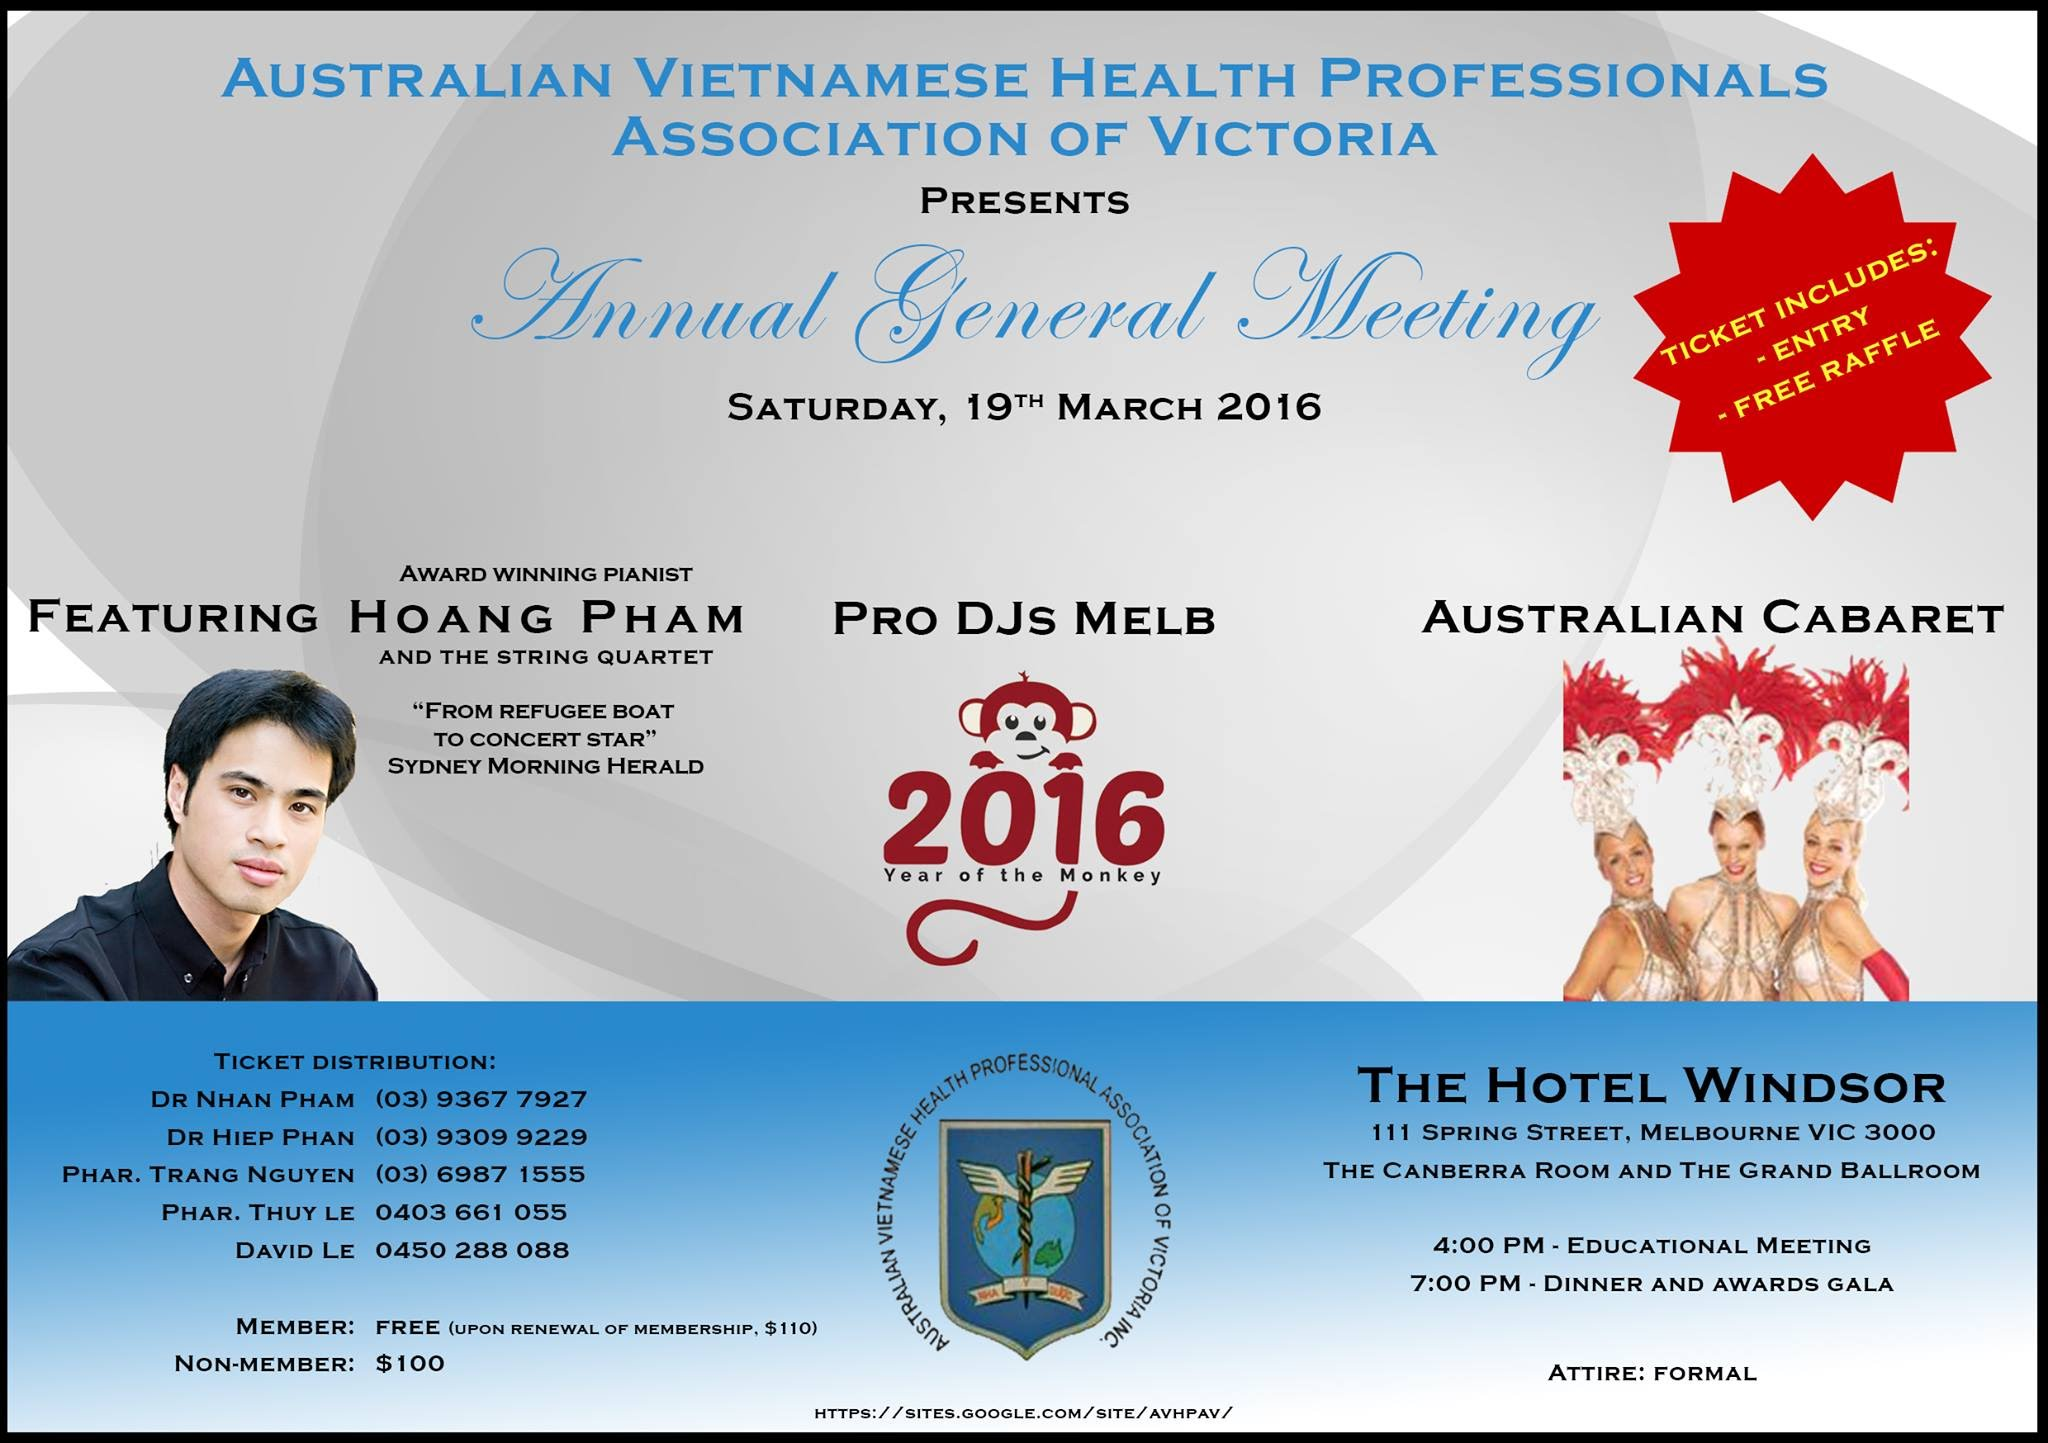 Meeting Minutes   The Australian Vietnamese Health Professionals